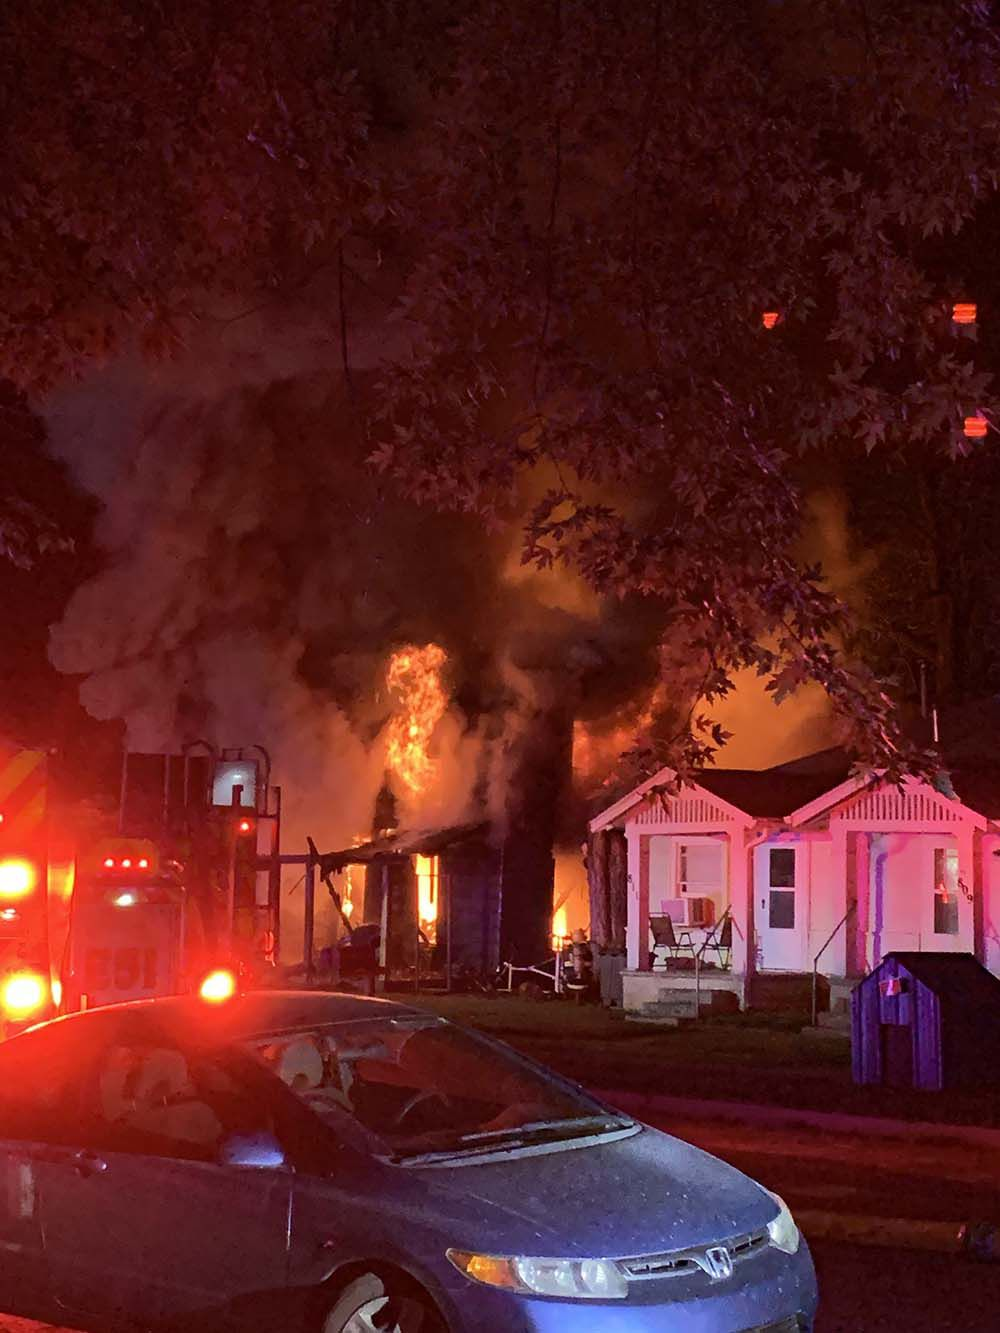 Residents safe after structure fire in Ark City